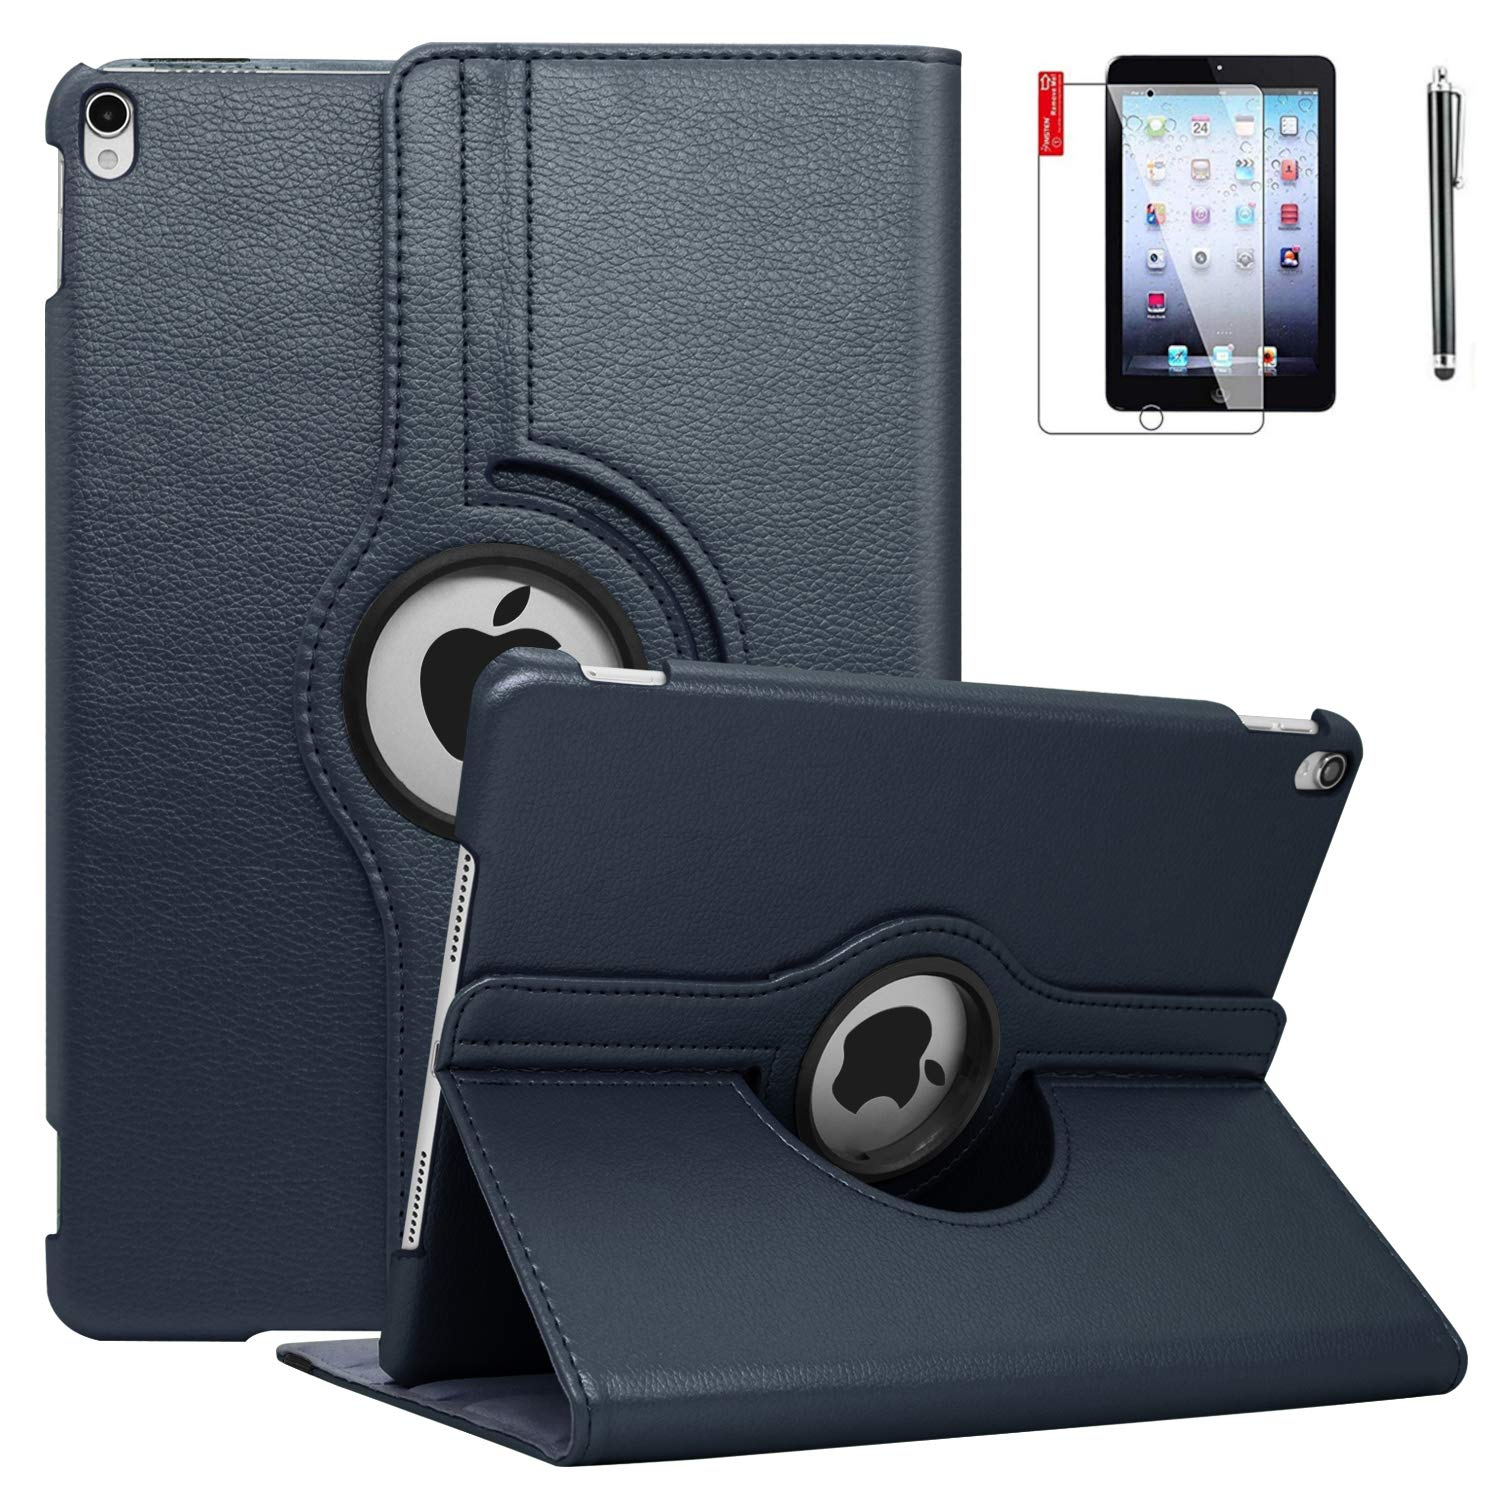 iPad Case Mini 3 with Bonus Screen Protector and Stylus - iPad Mini 3/2/1 Case Cover - 360 Degree Rotating Stand with Auto Sleep/Wake for Mini 1st/ 2nd/ 3rd Generation - A1599 A1600(Navy Blue)